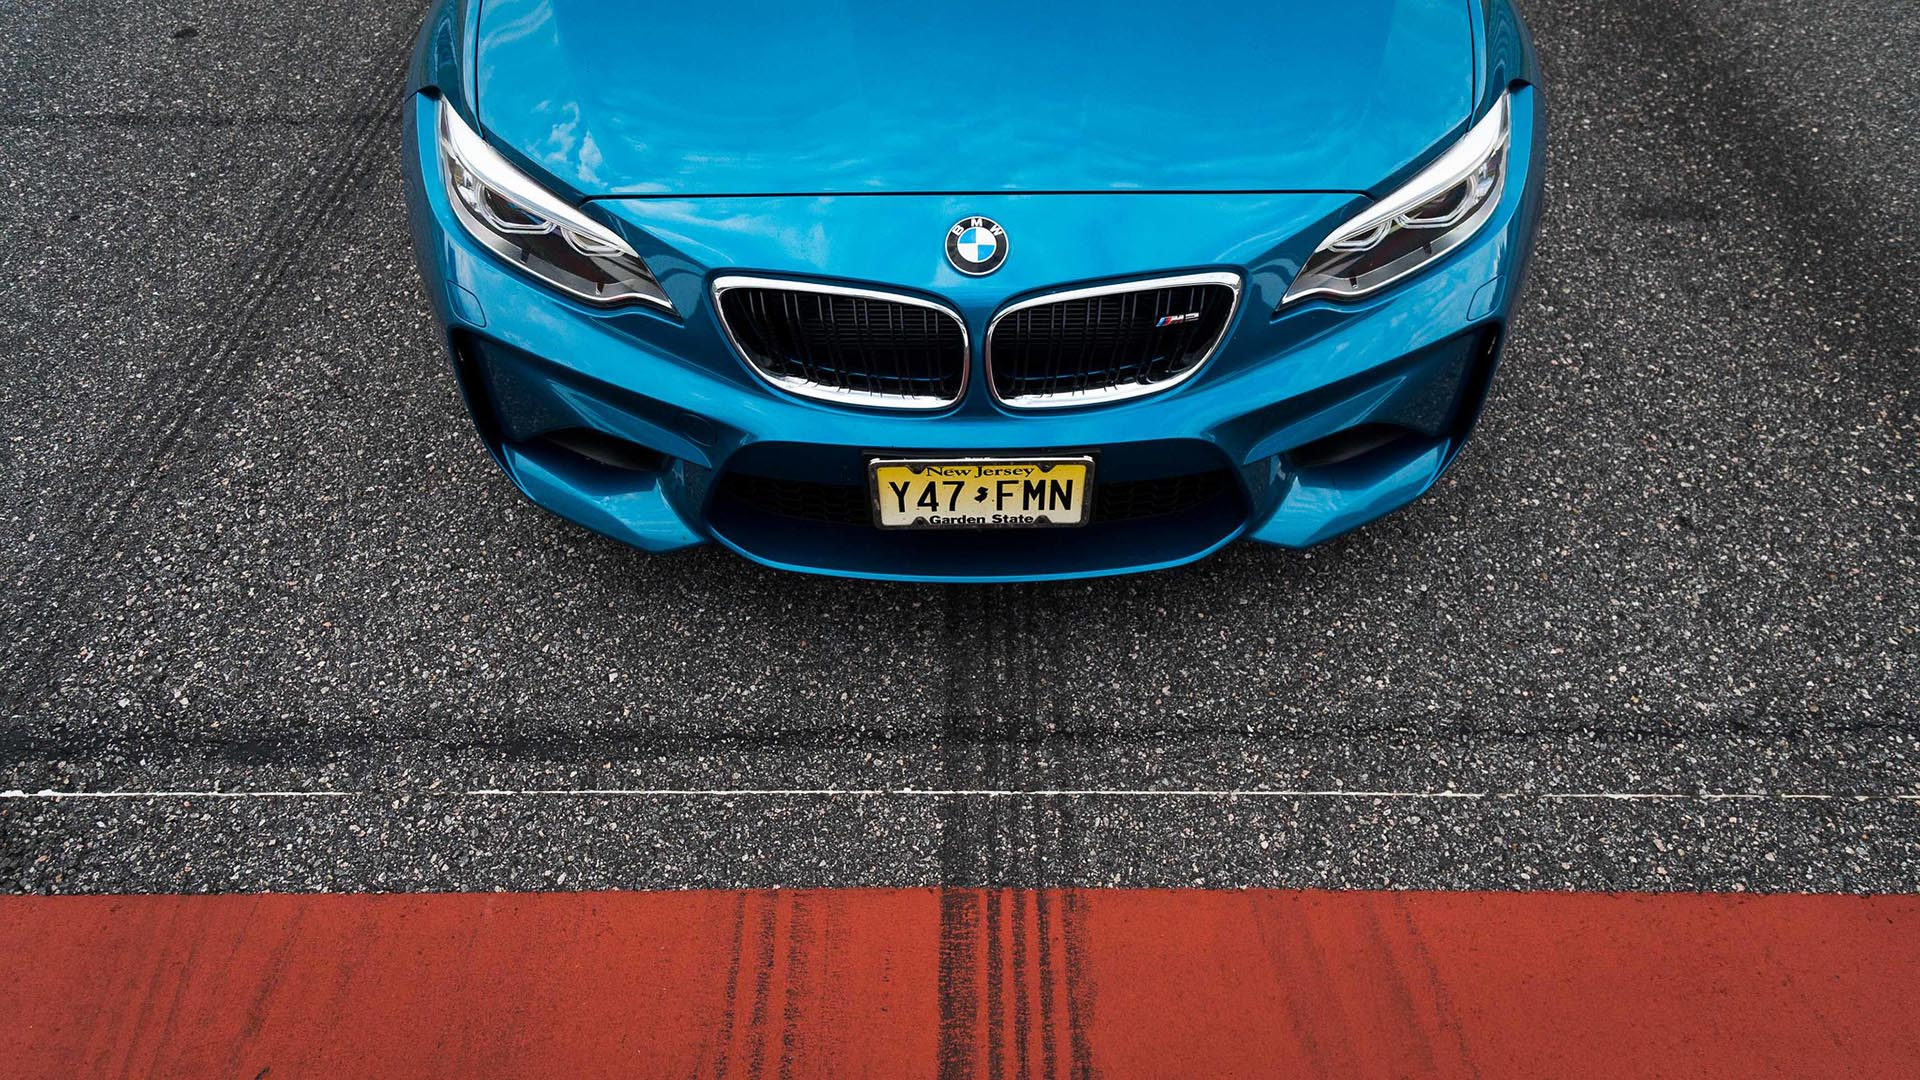 07_BMW M2 front grill